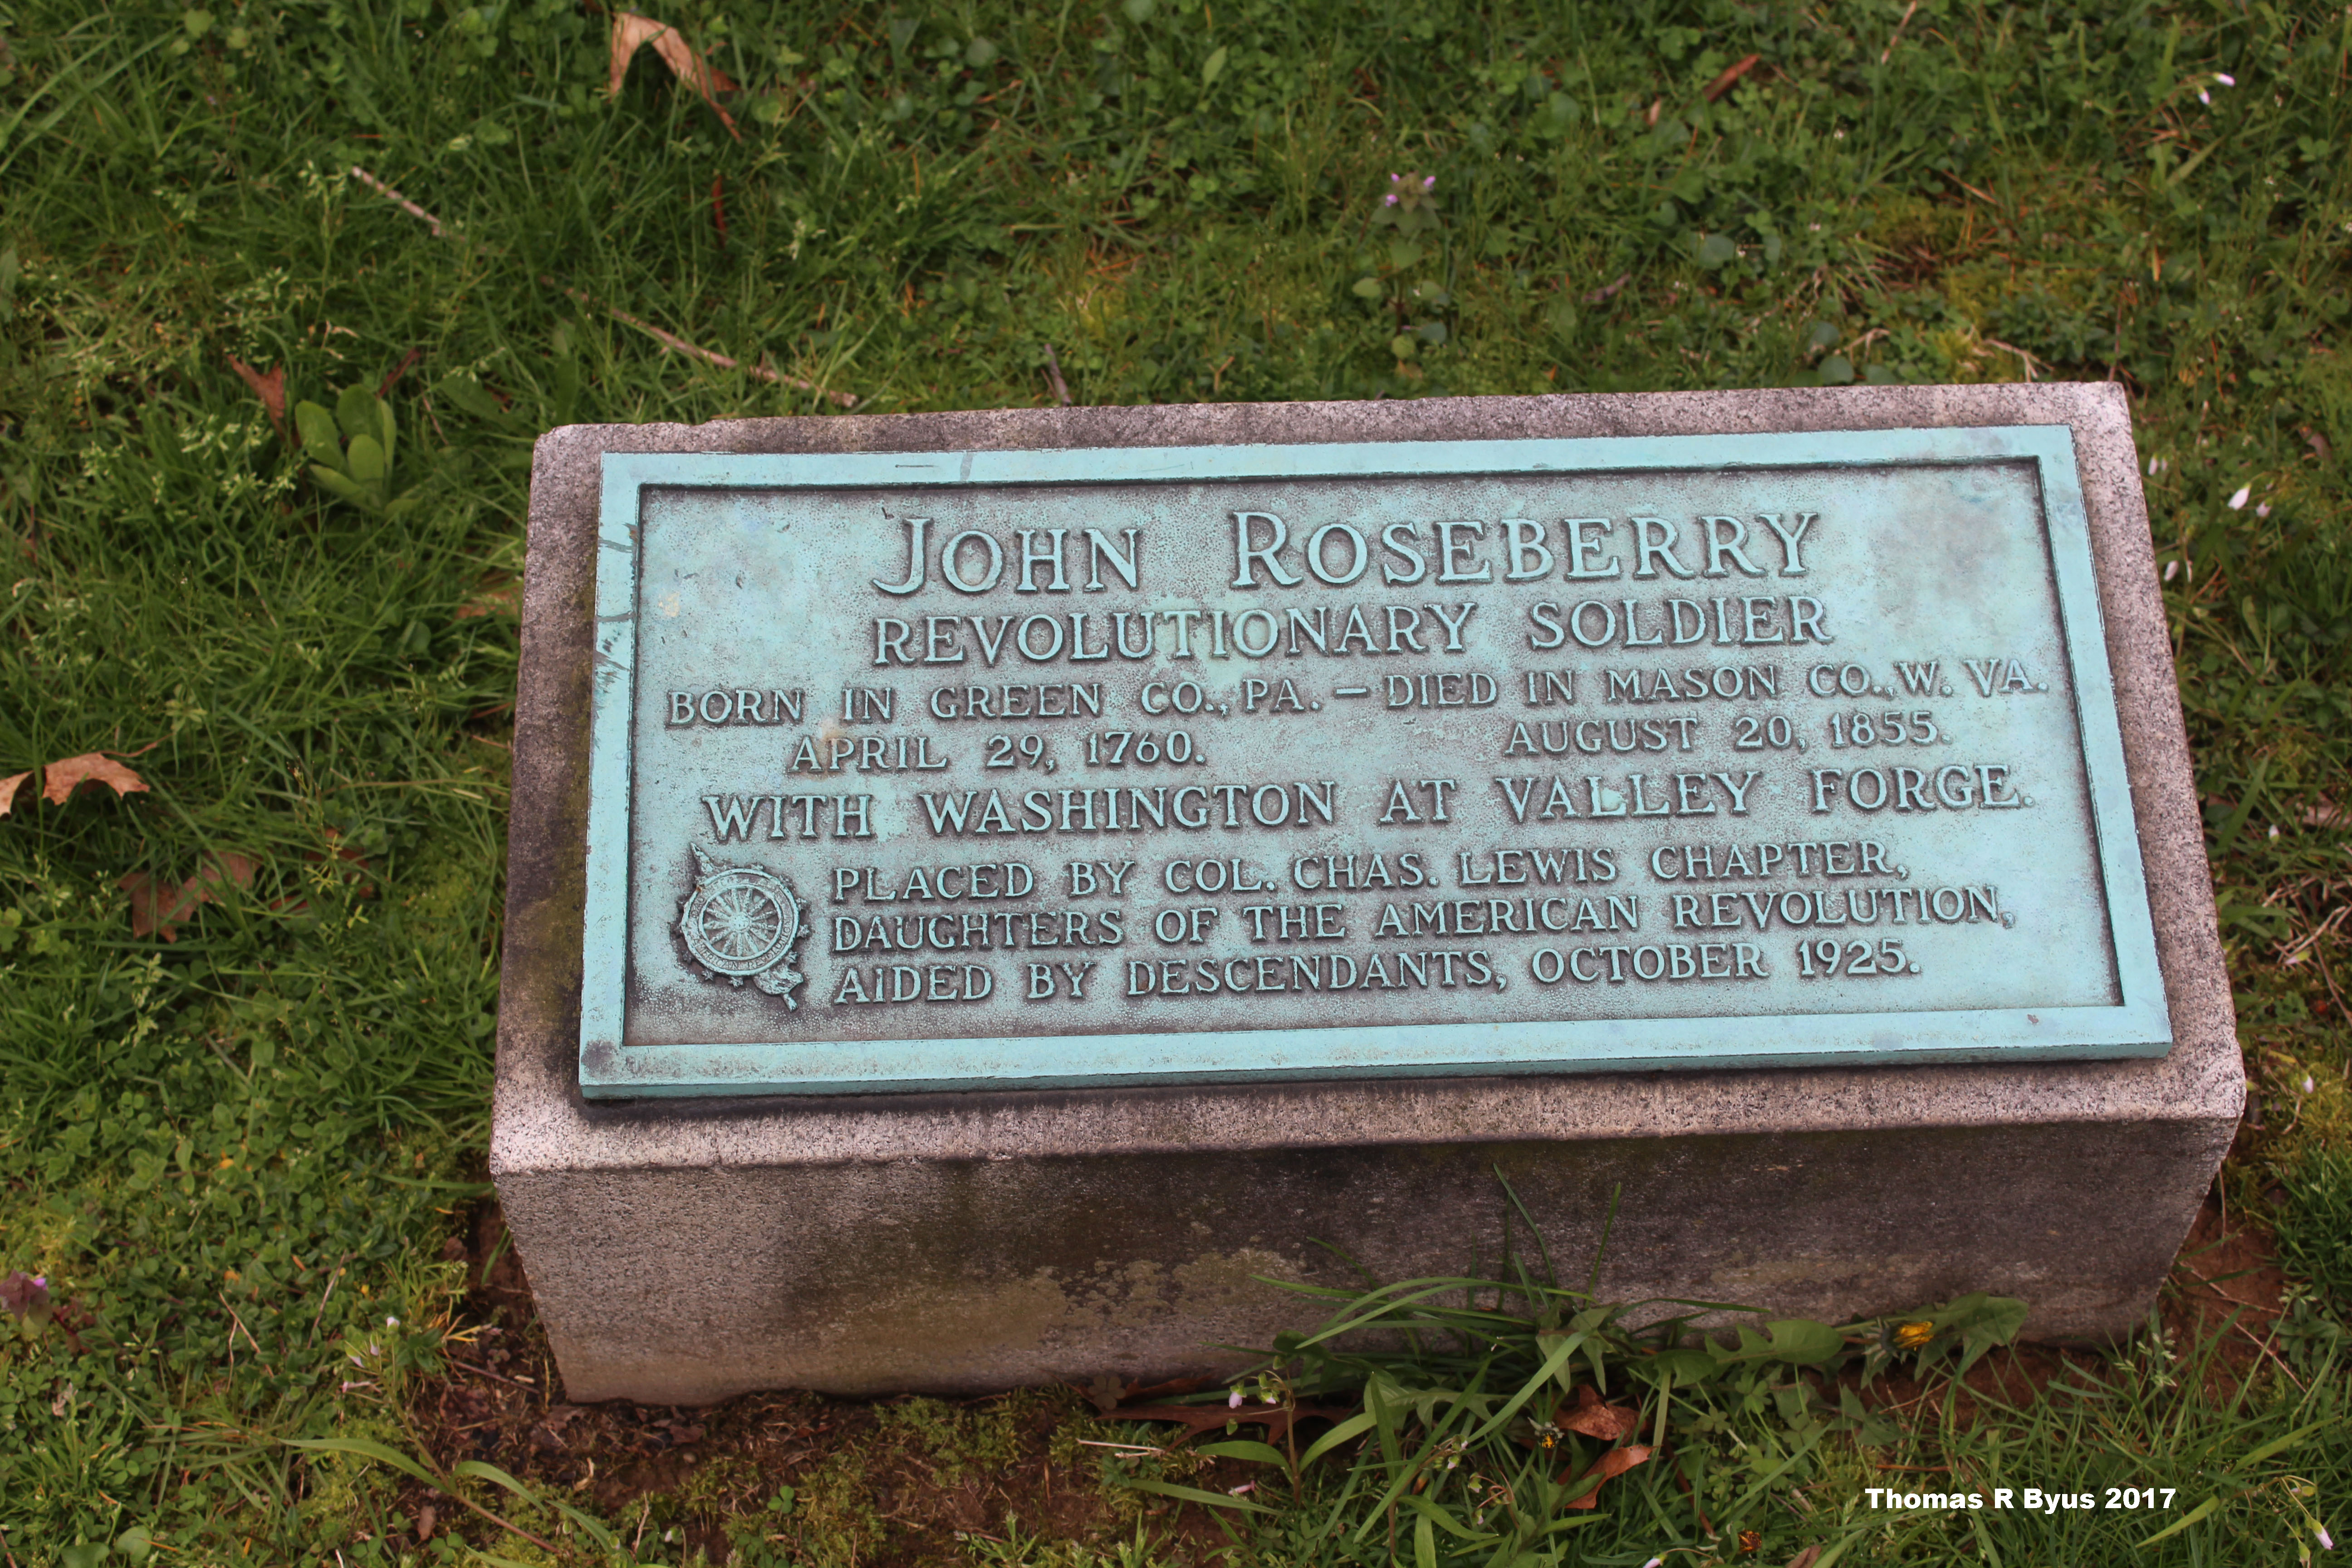 The Daughters of the American Revolution plaque near Roseberry's replaced marker.